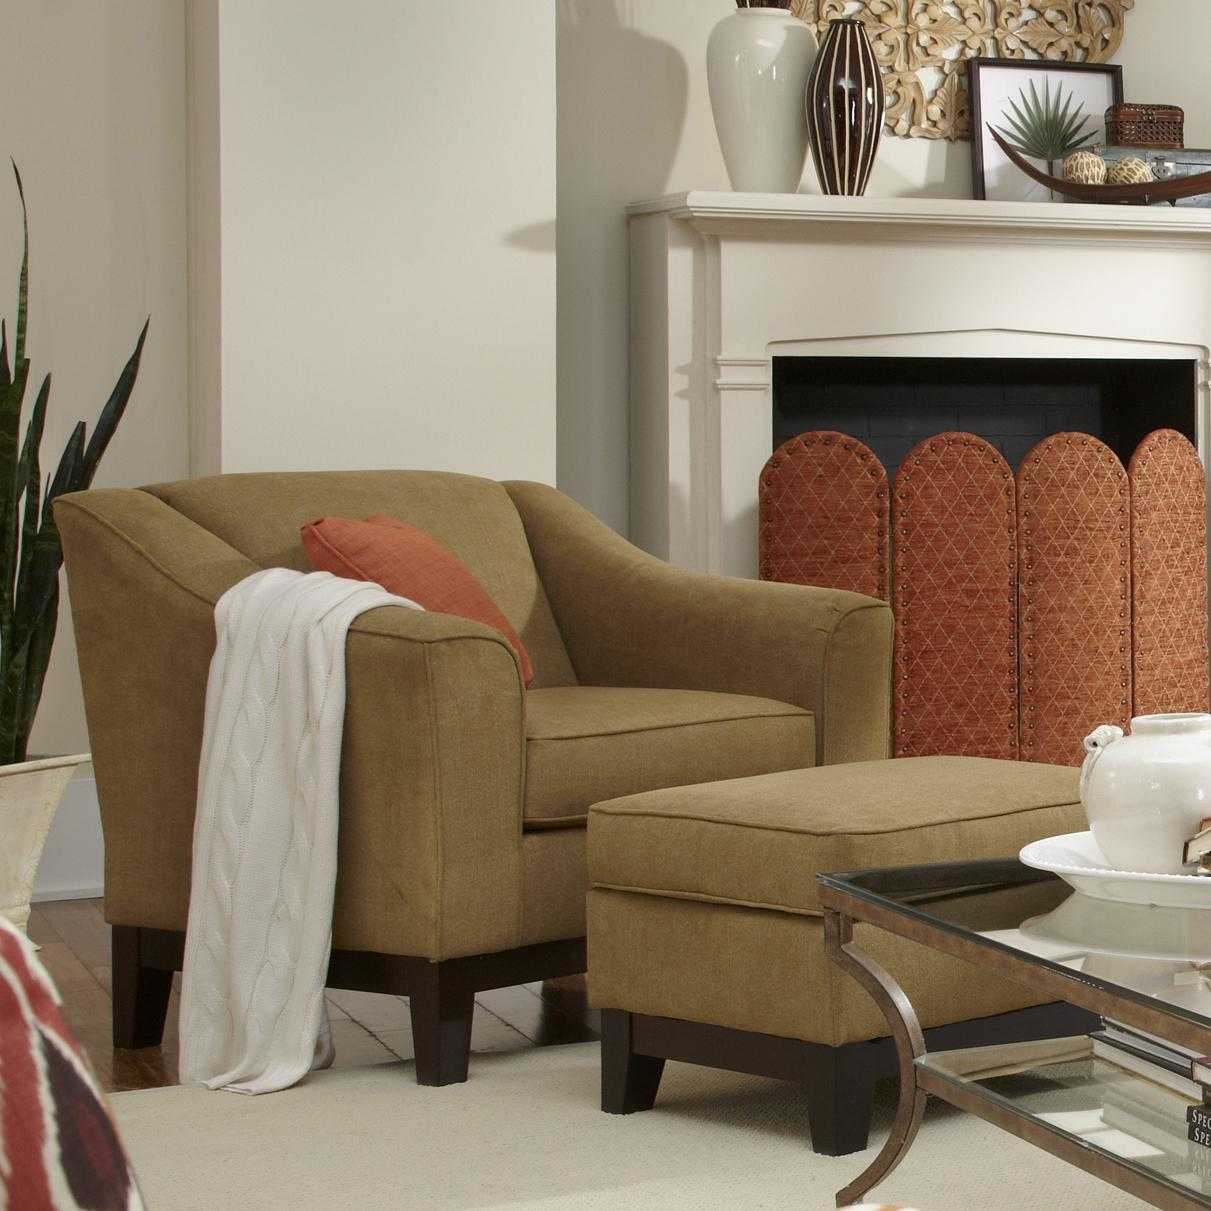 Home Decor Furnishing Services: Best Home Furnishings Emeline Customizable Chair And